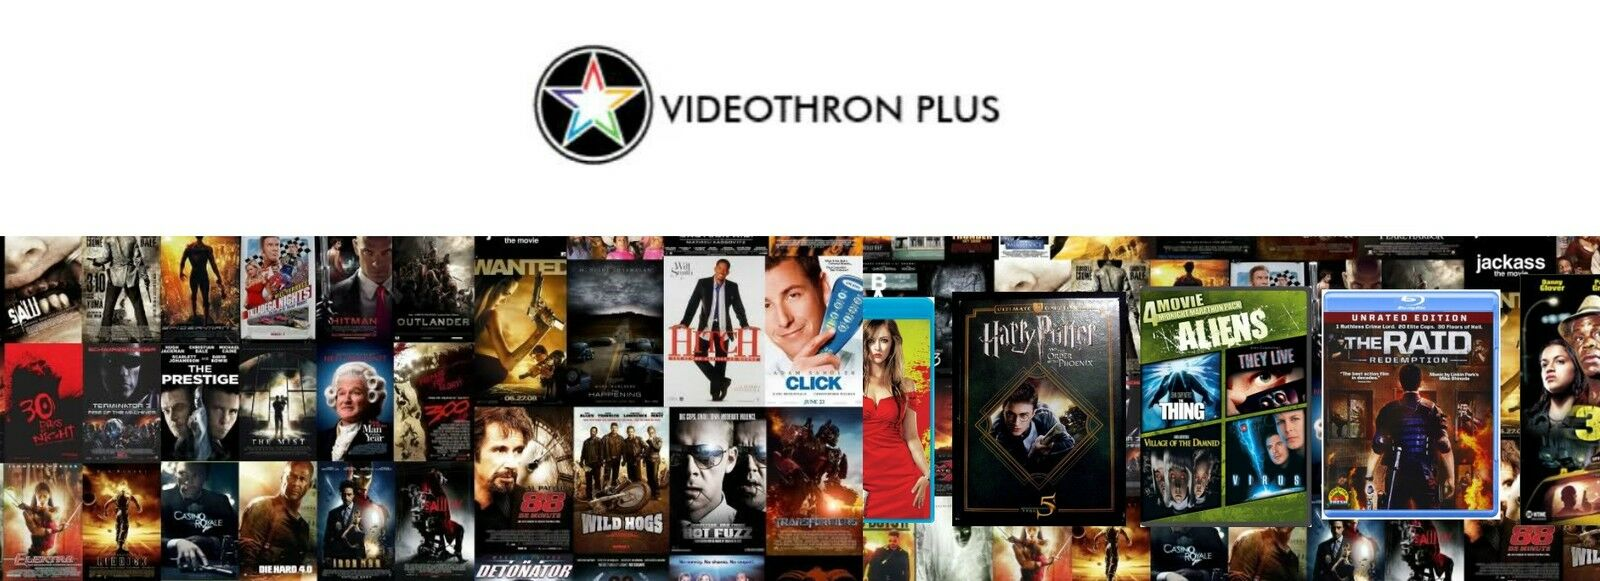 Videothron Plus